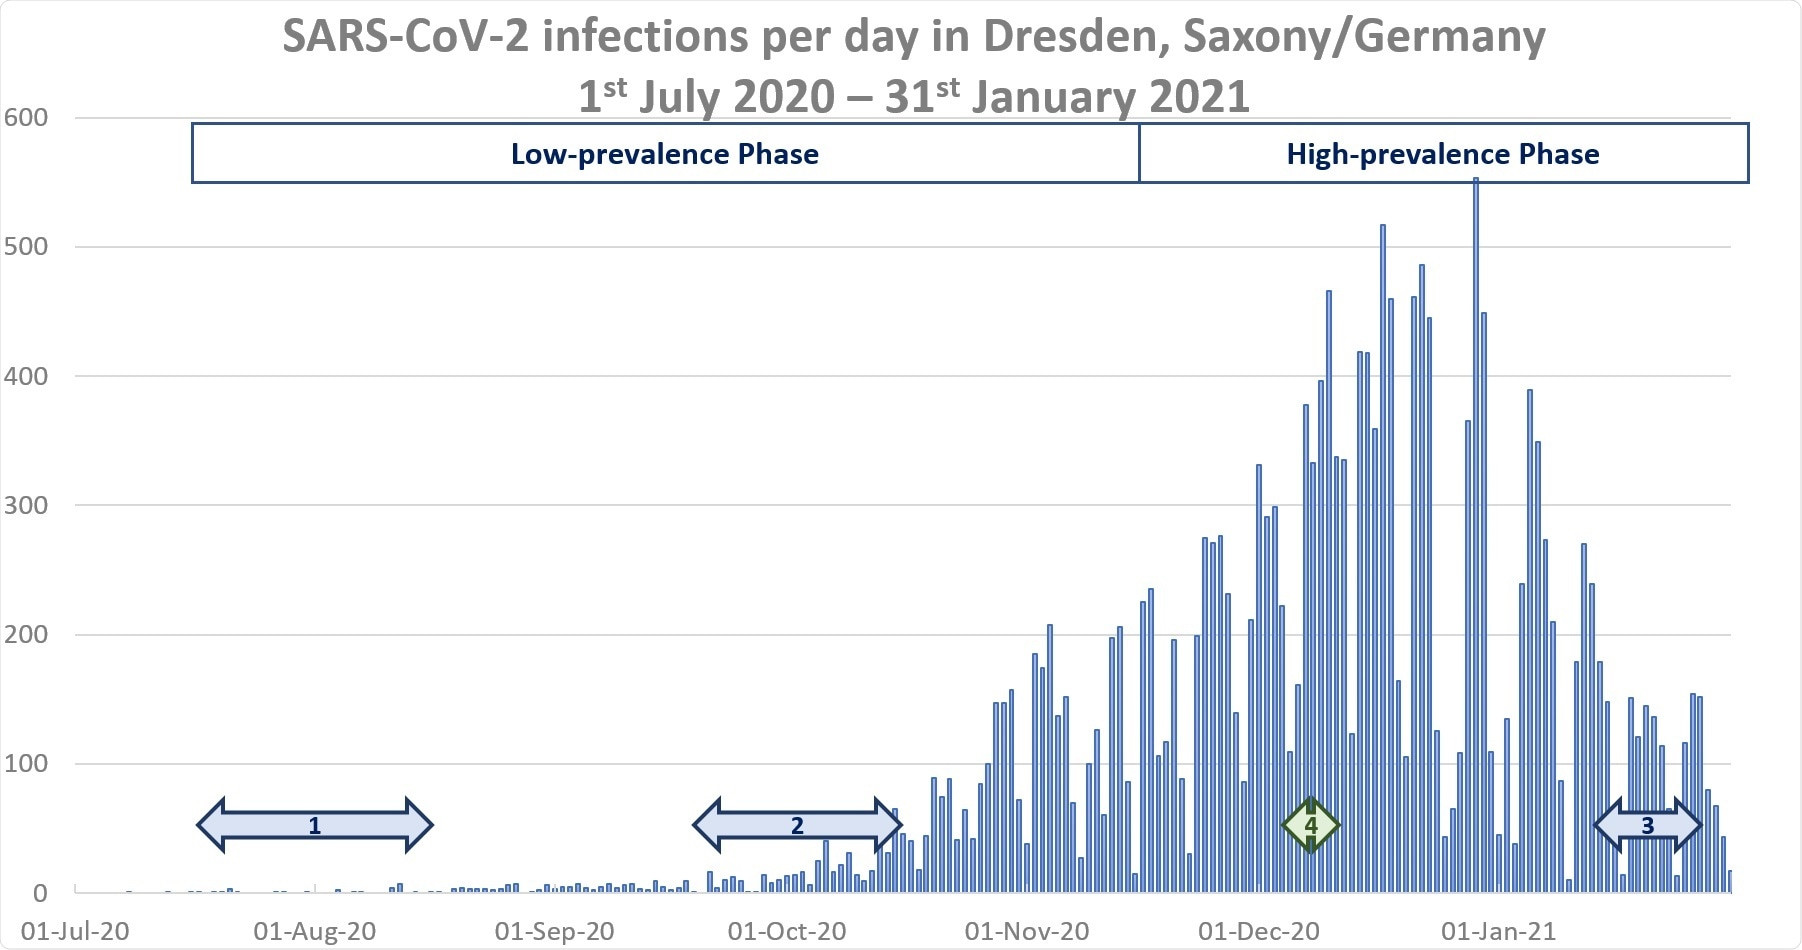 Timeline of serological testing (1: baseline, 2: 2nd serological testing, 3: 3rd serological testing, 4: additional serological testing in December 2020) and reported numbers of SARS-CoV-2 infections in Dresden, Saxony/Germany